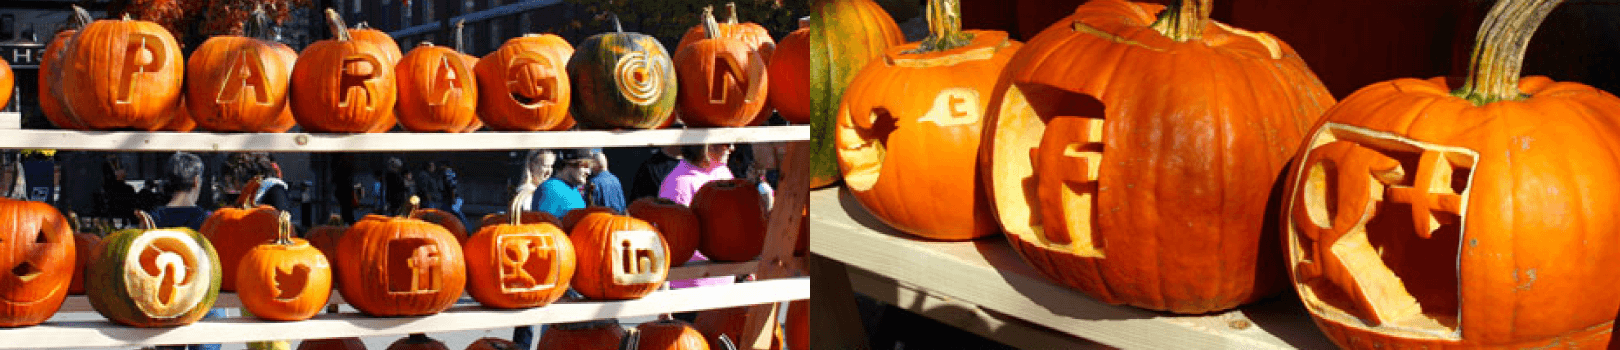 Paragon Carves Some Pumpkins for Keene Pumpkin Fest